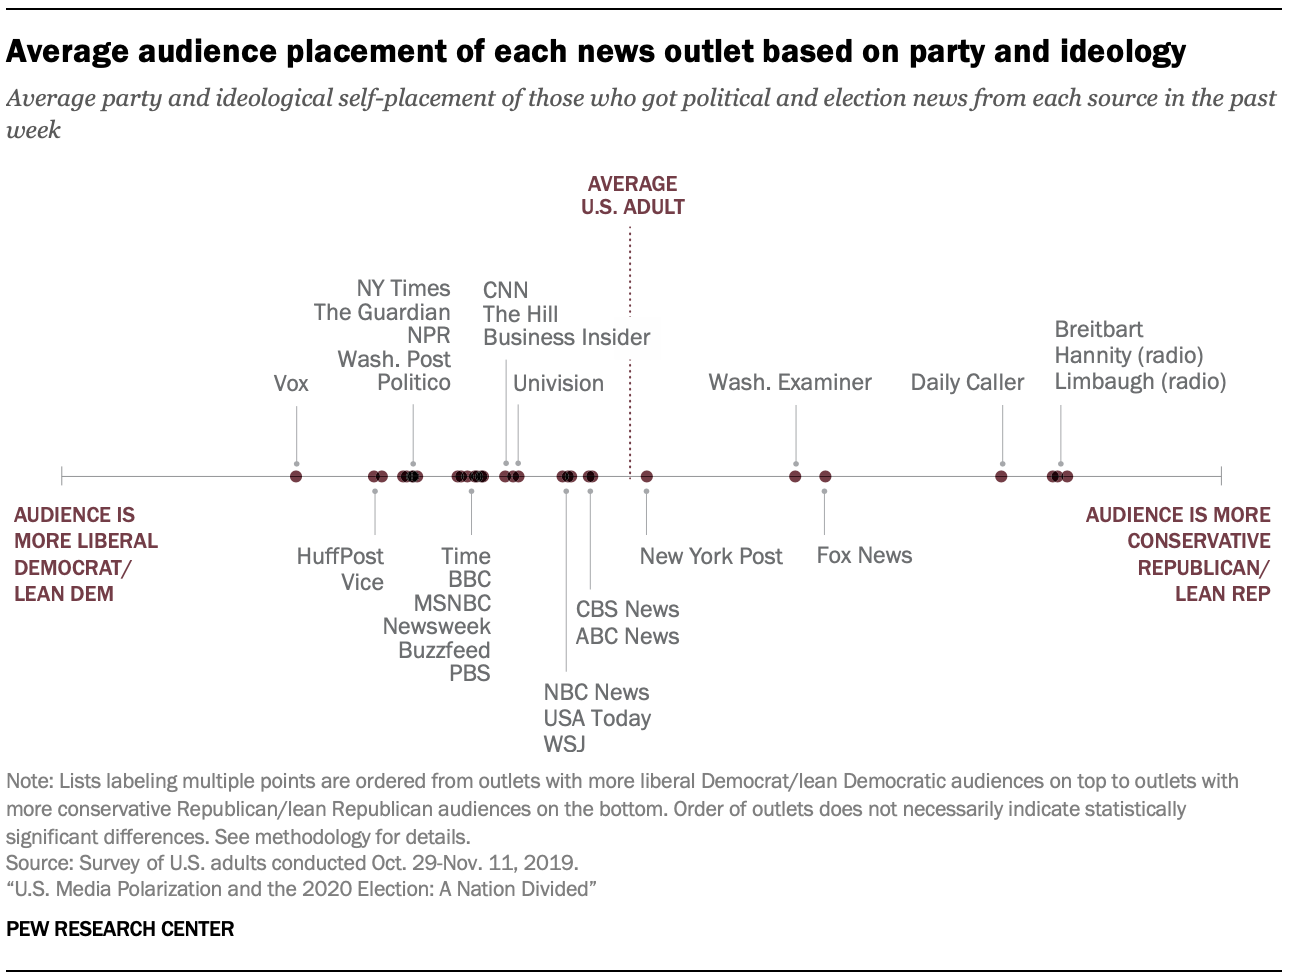 Average audience placement of each news outlet based on party and ideology